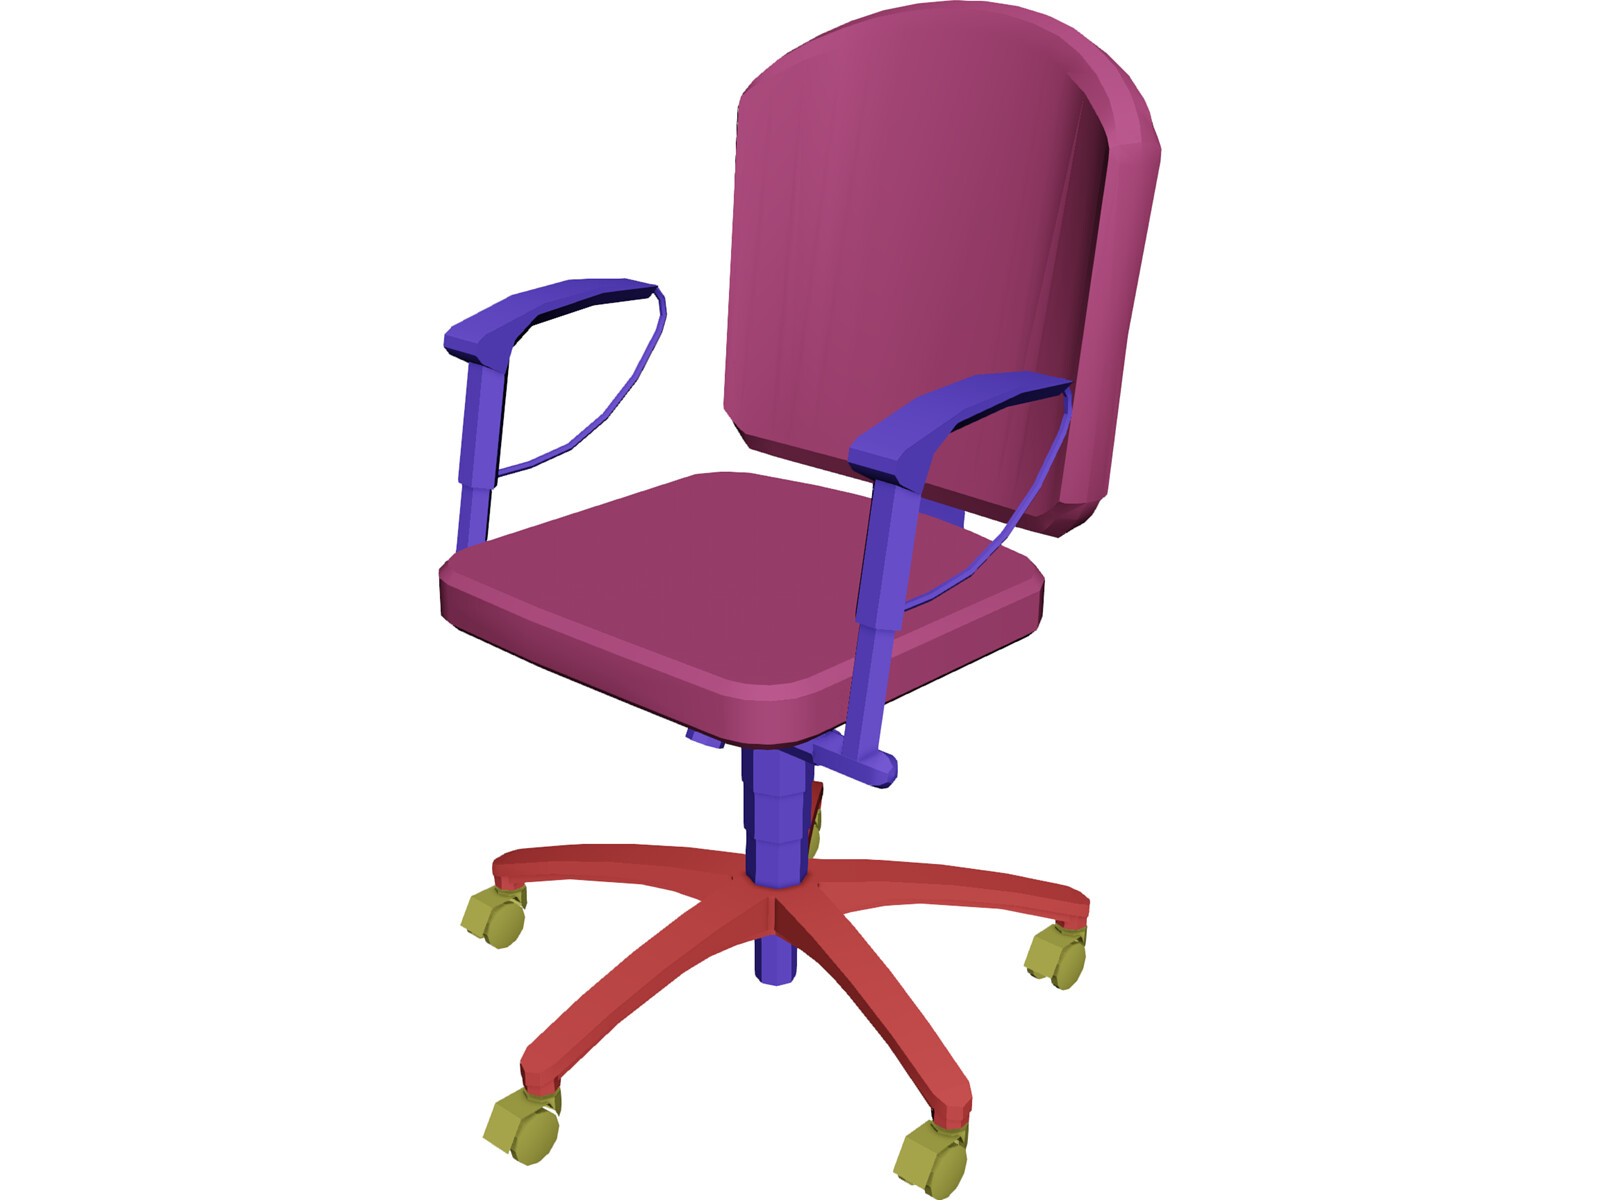 Chair Arms Adjustable